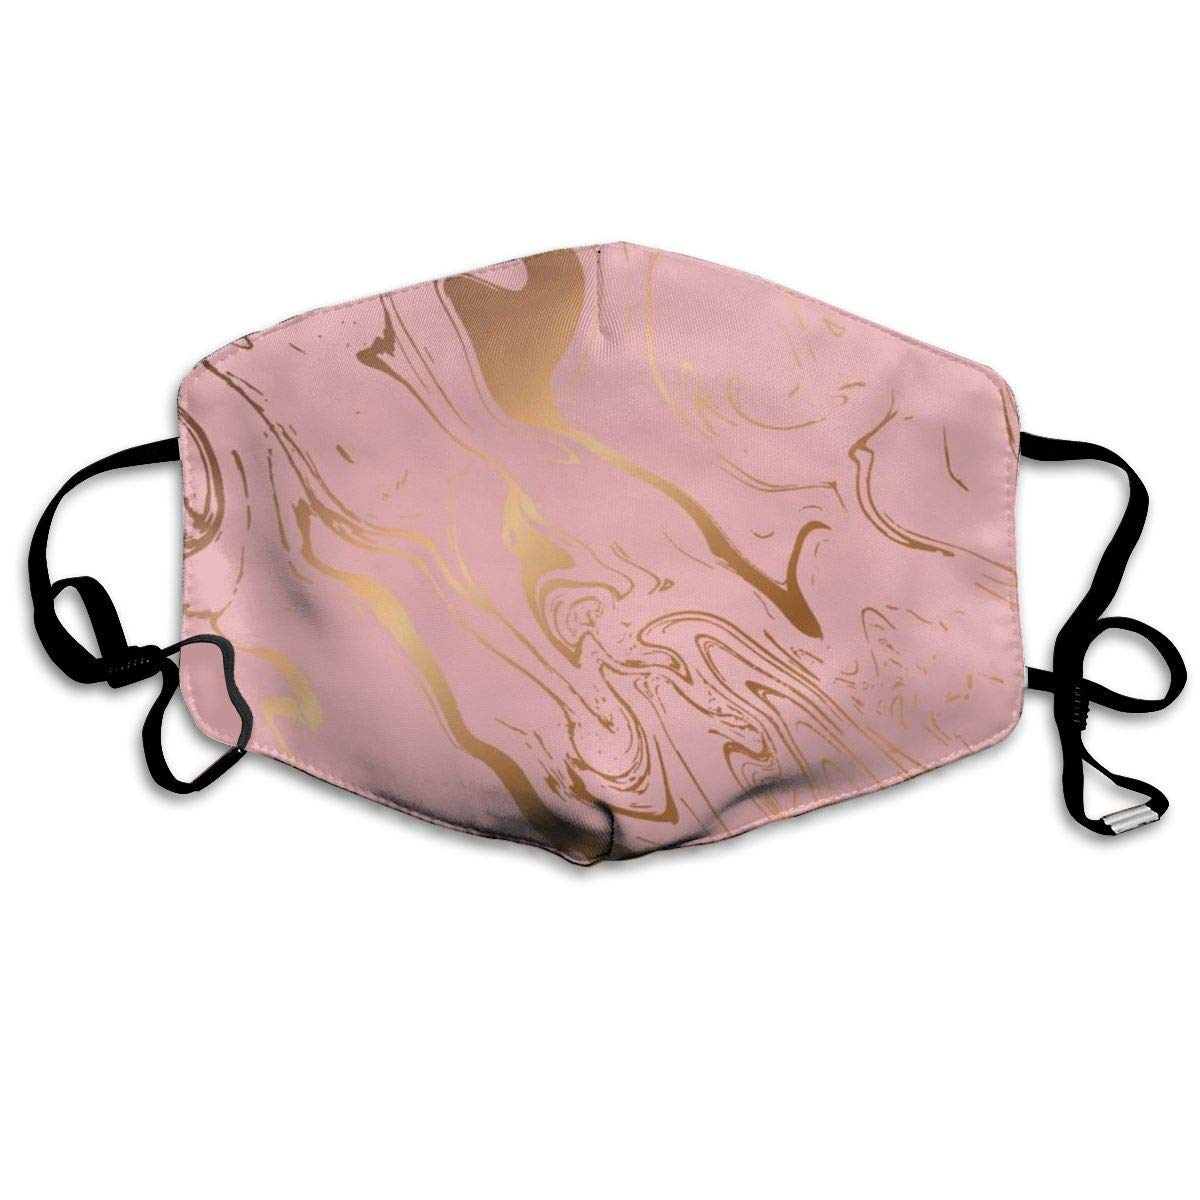 Bdwuhs Mascarillas Bucales,Boca Máscara Dust Mask for Women and Men Pink Marble with Gold Printed Foldable Mask Face Mask Anti-Dust Mouth Mask